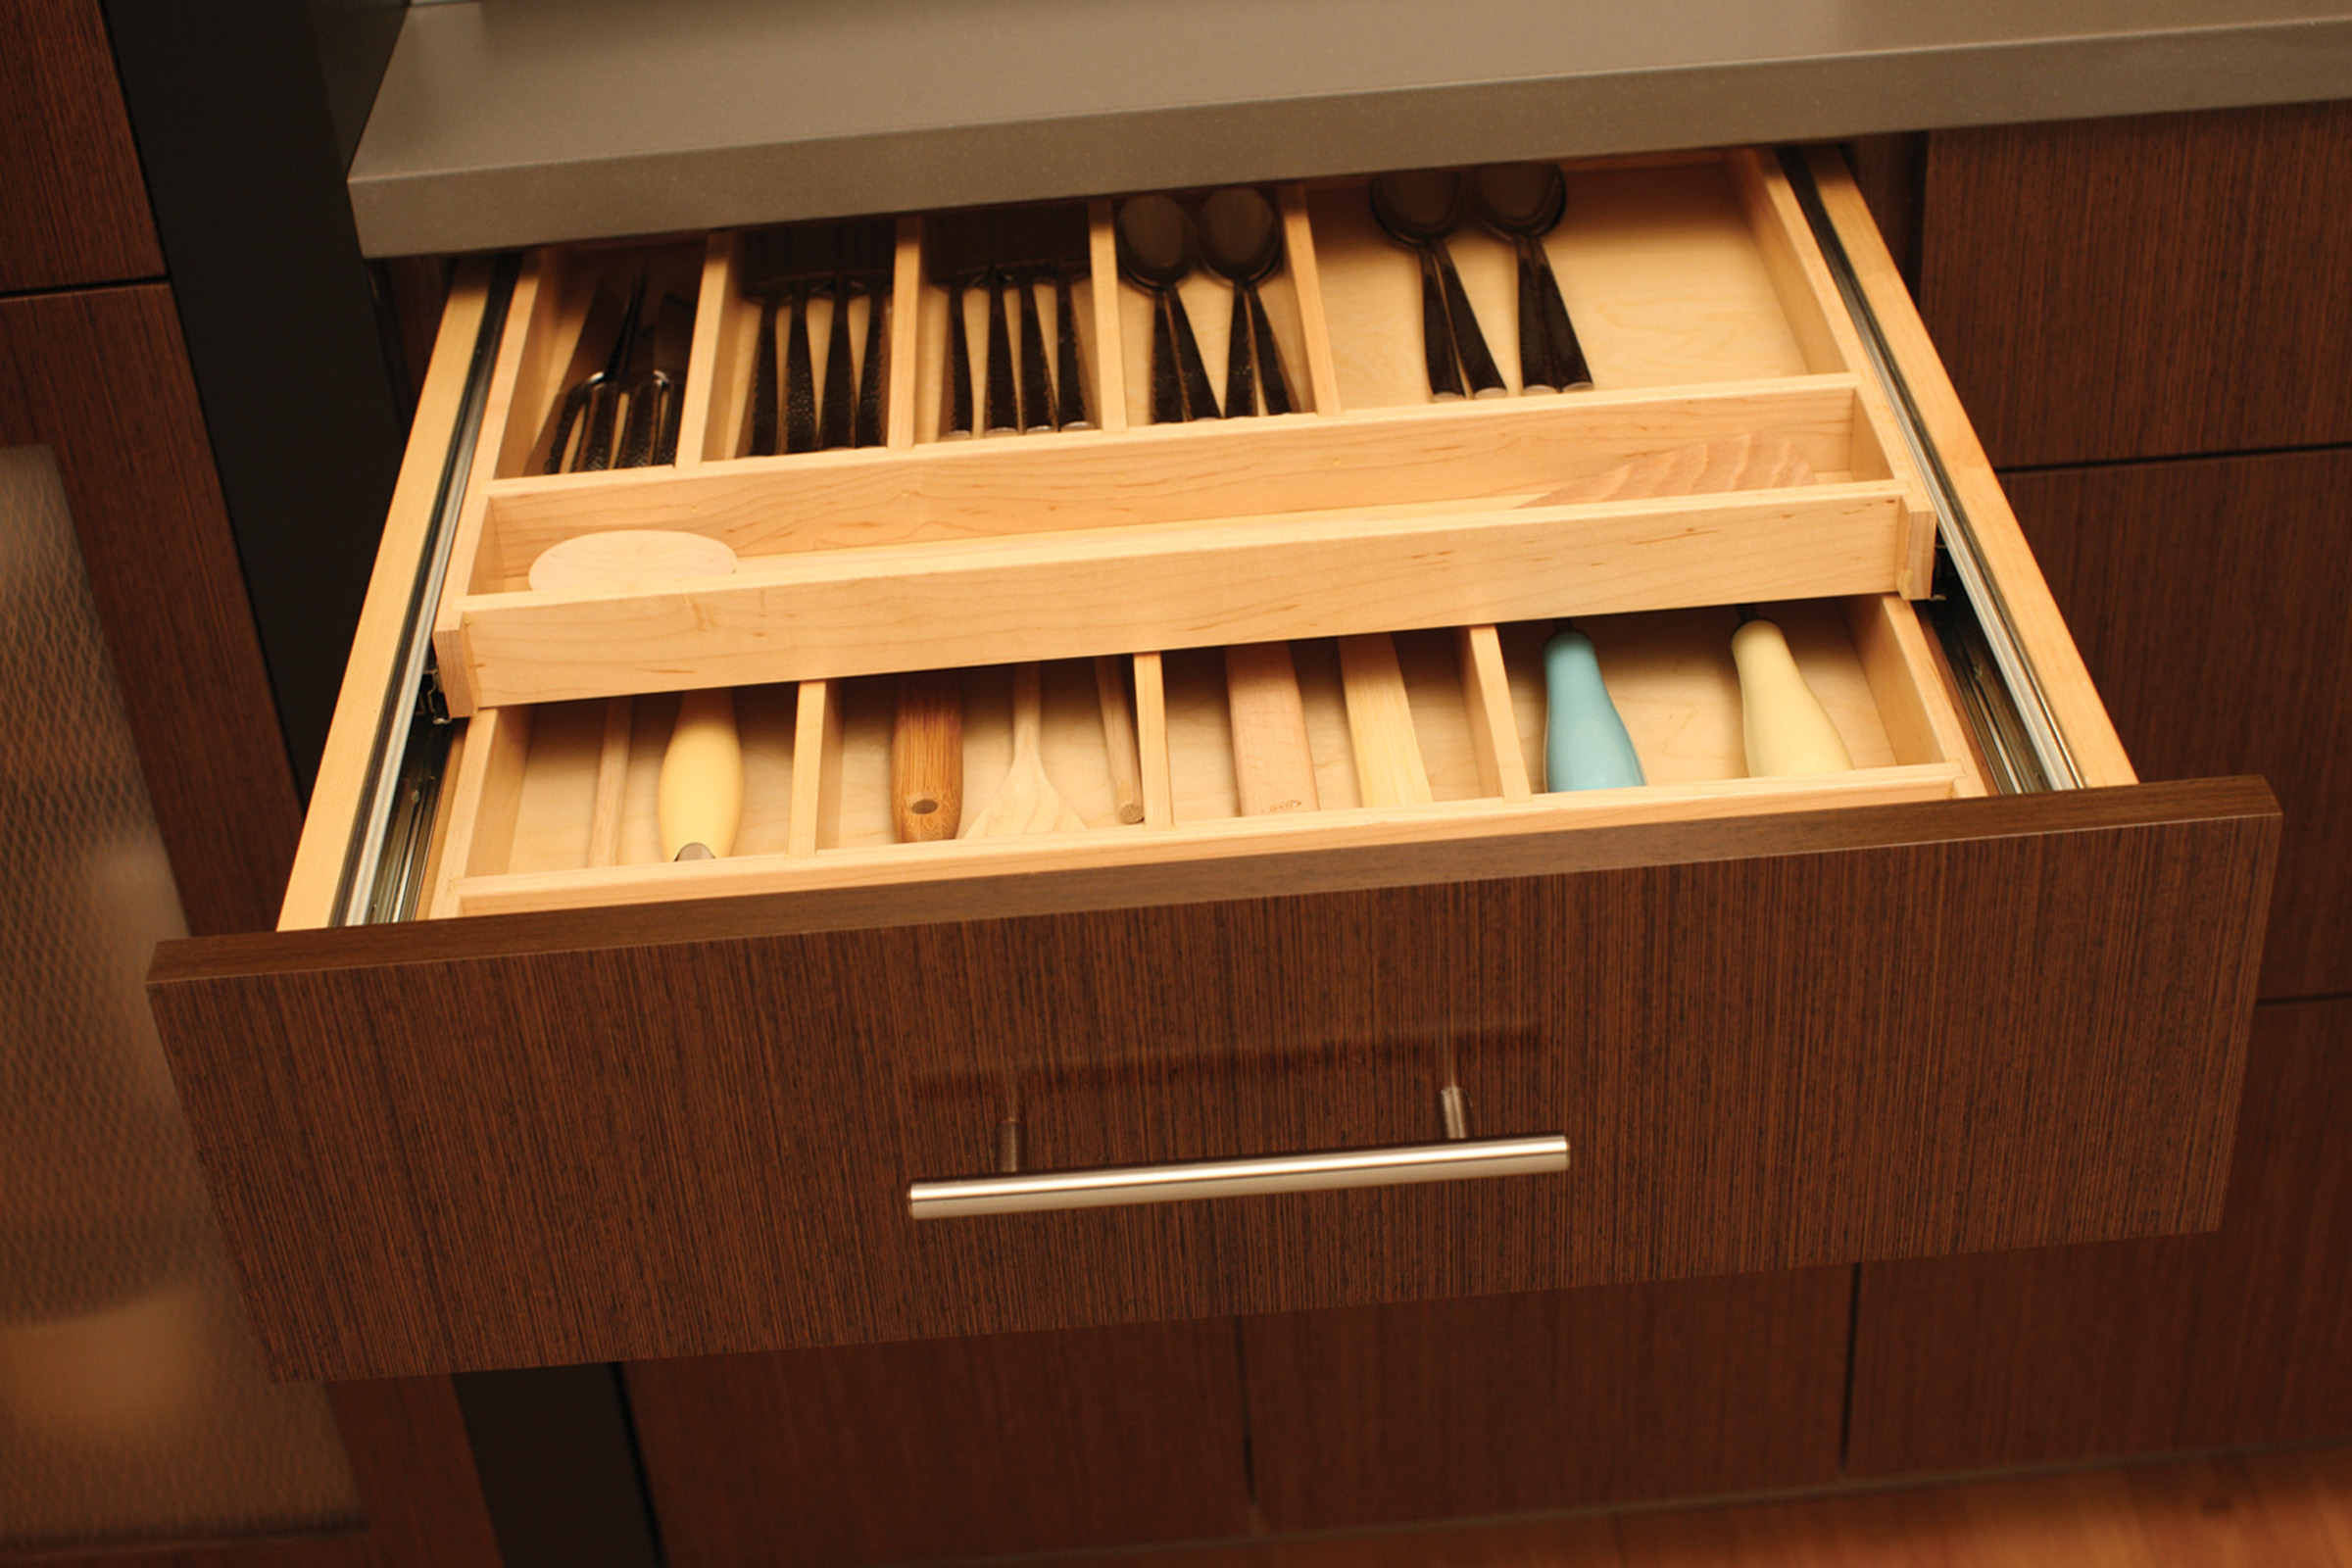 ‰Two-Tier Wood Cutlery Tray Style A